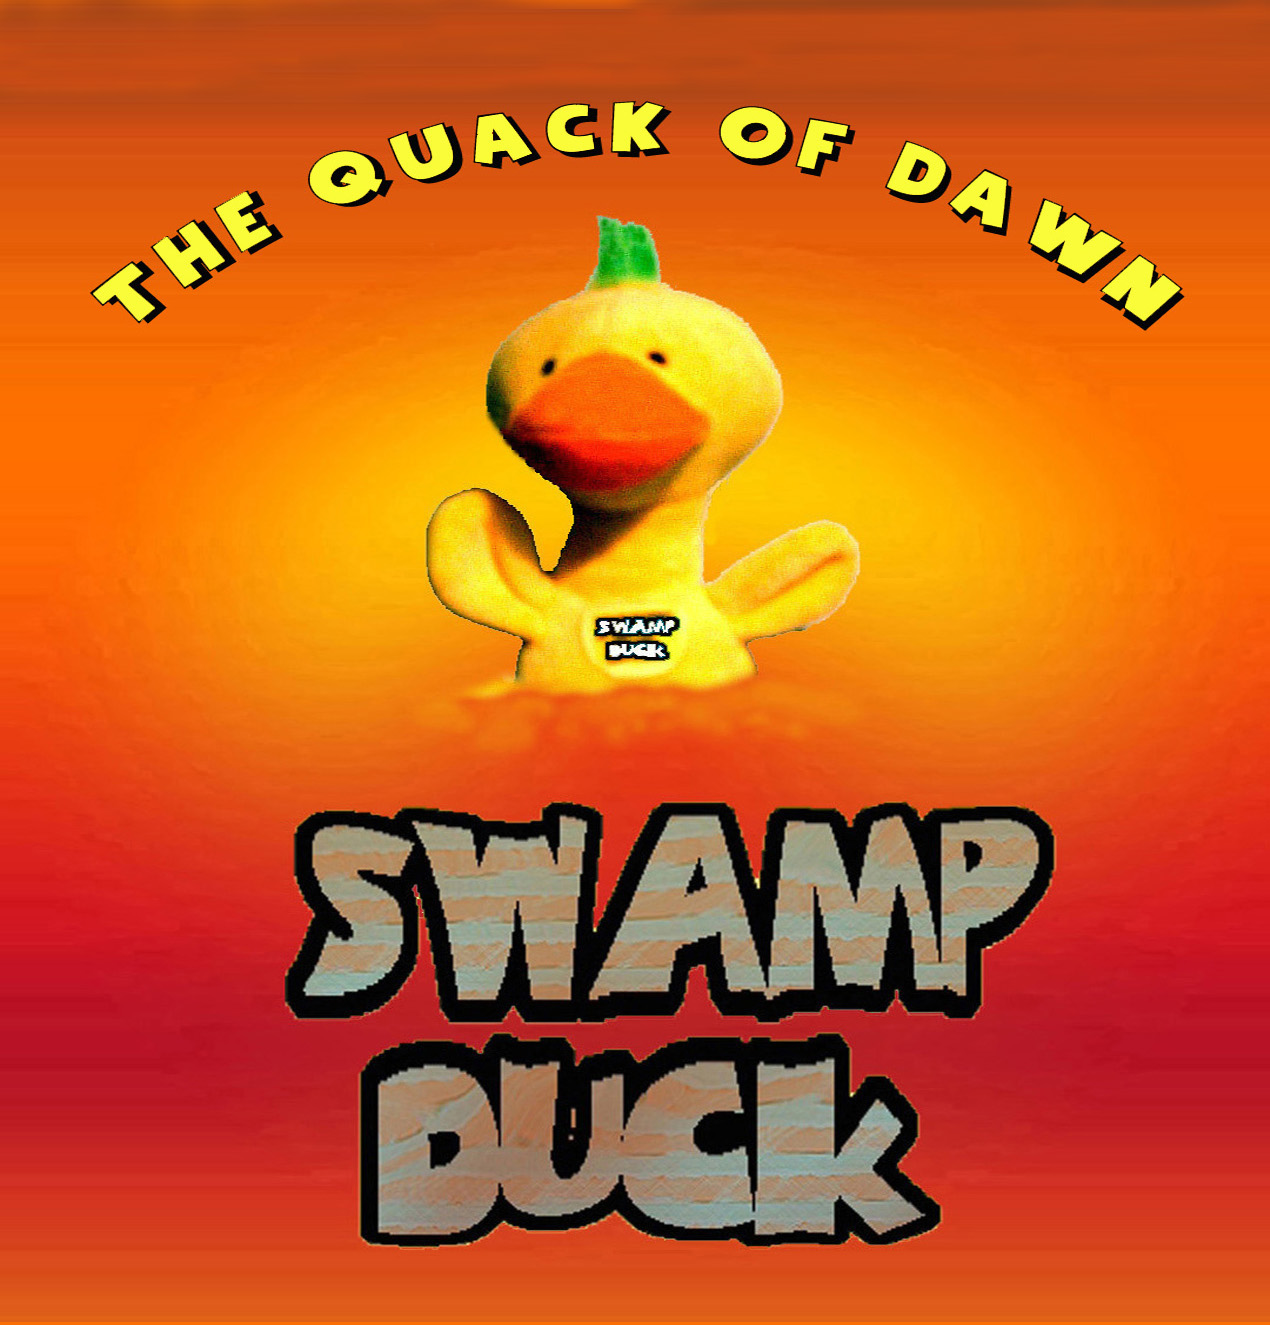 The Quack of Dawn CD